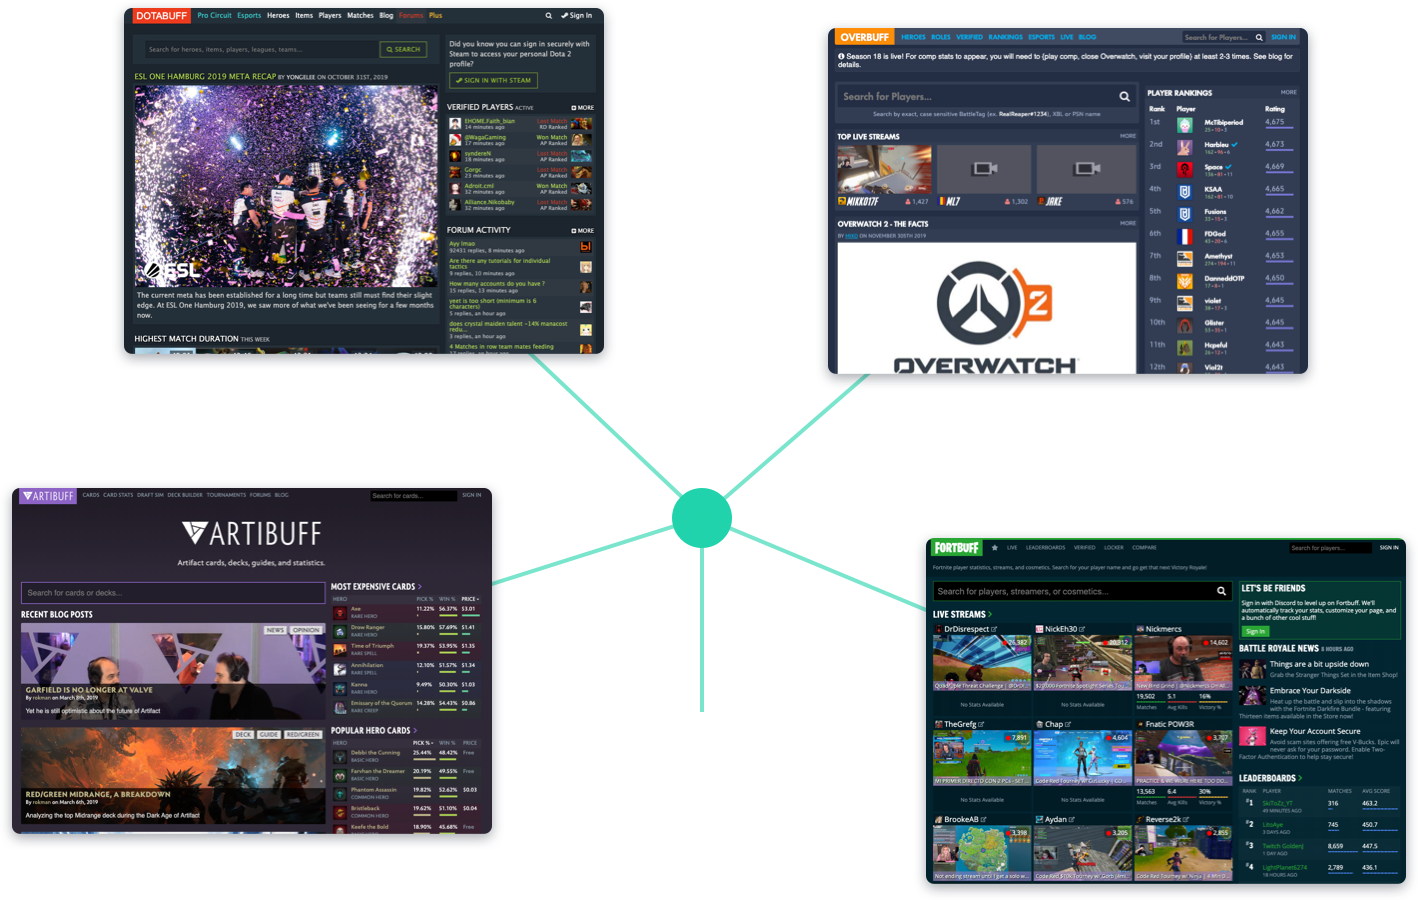 Our network of data-driven competitive gaming properties